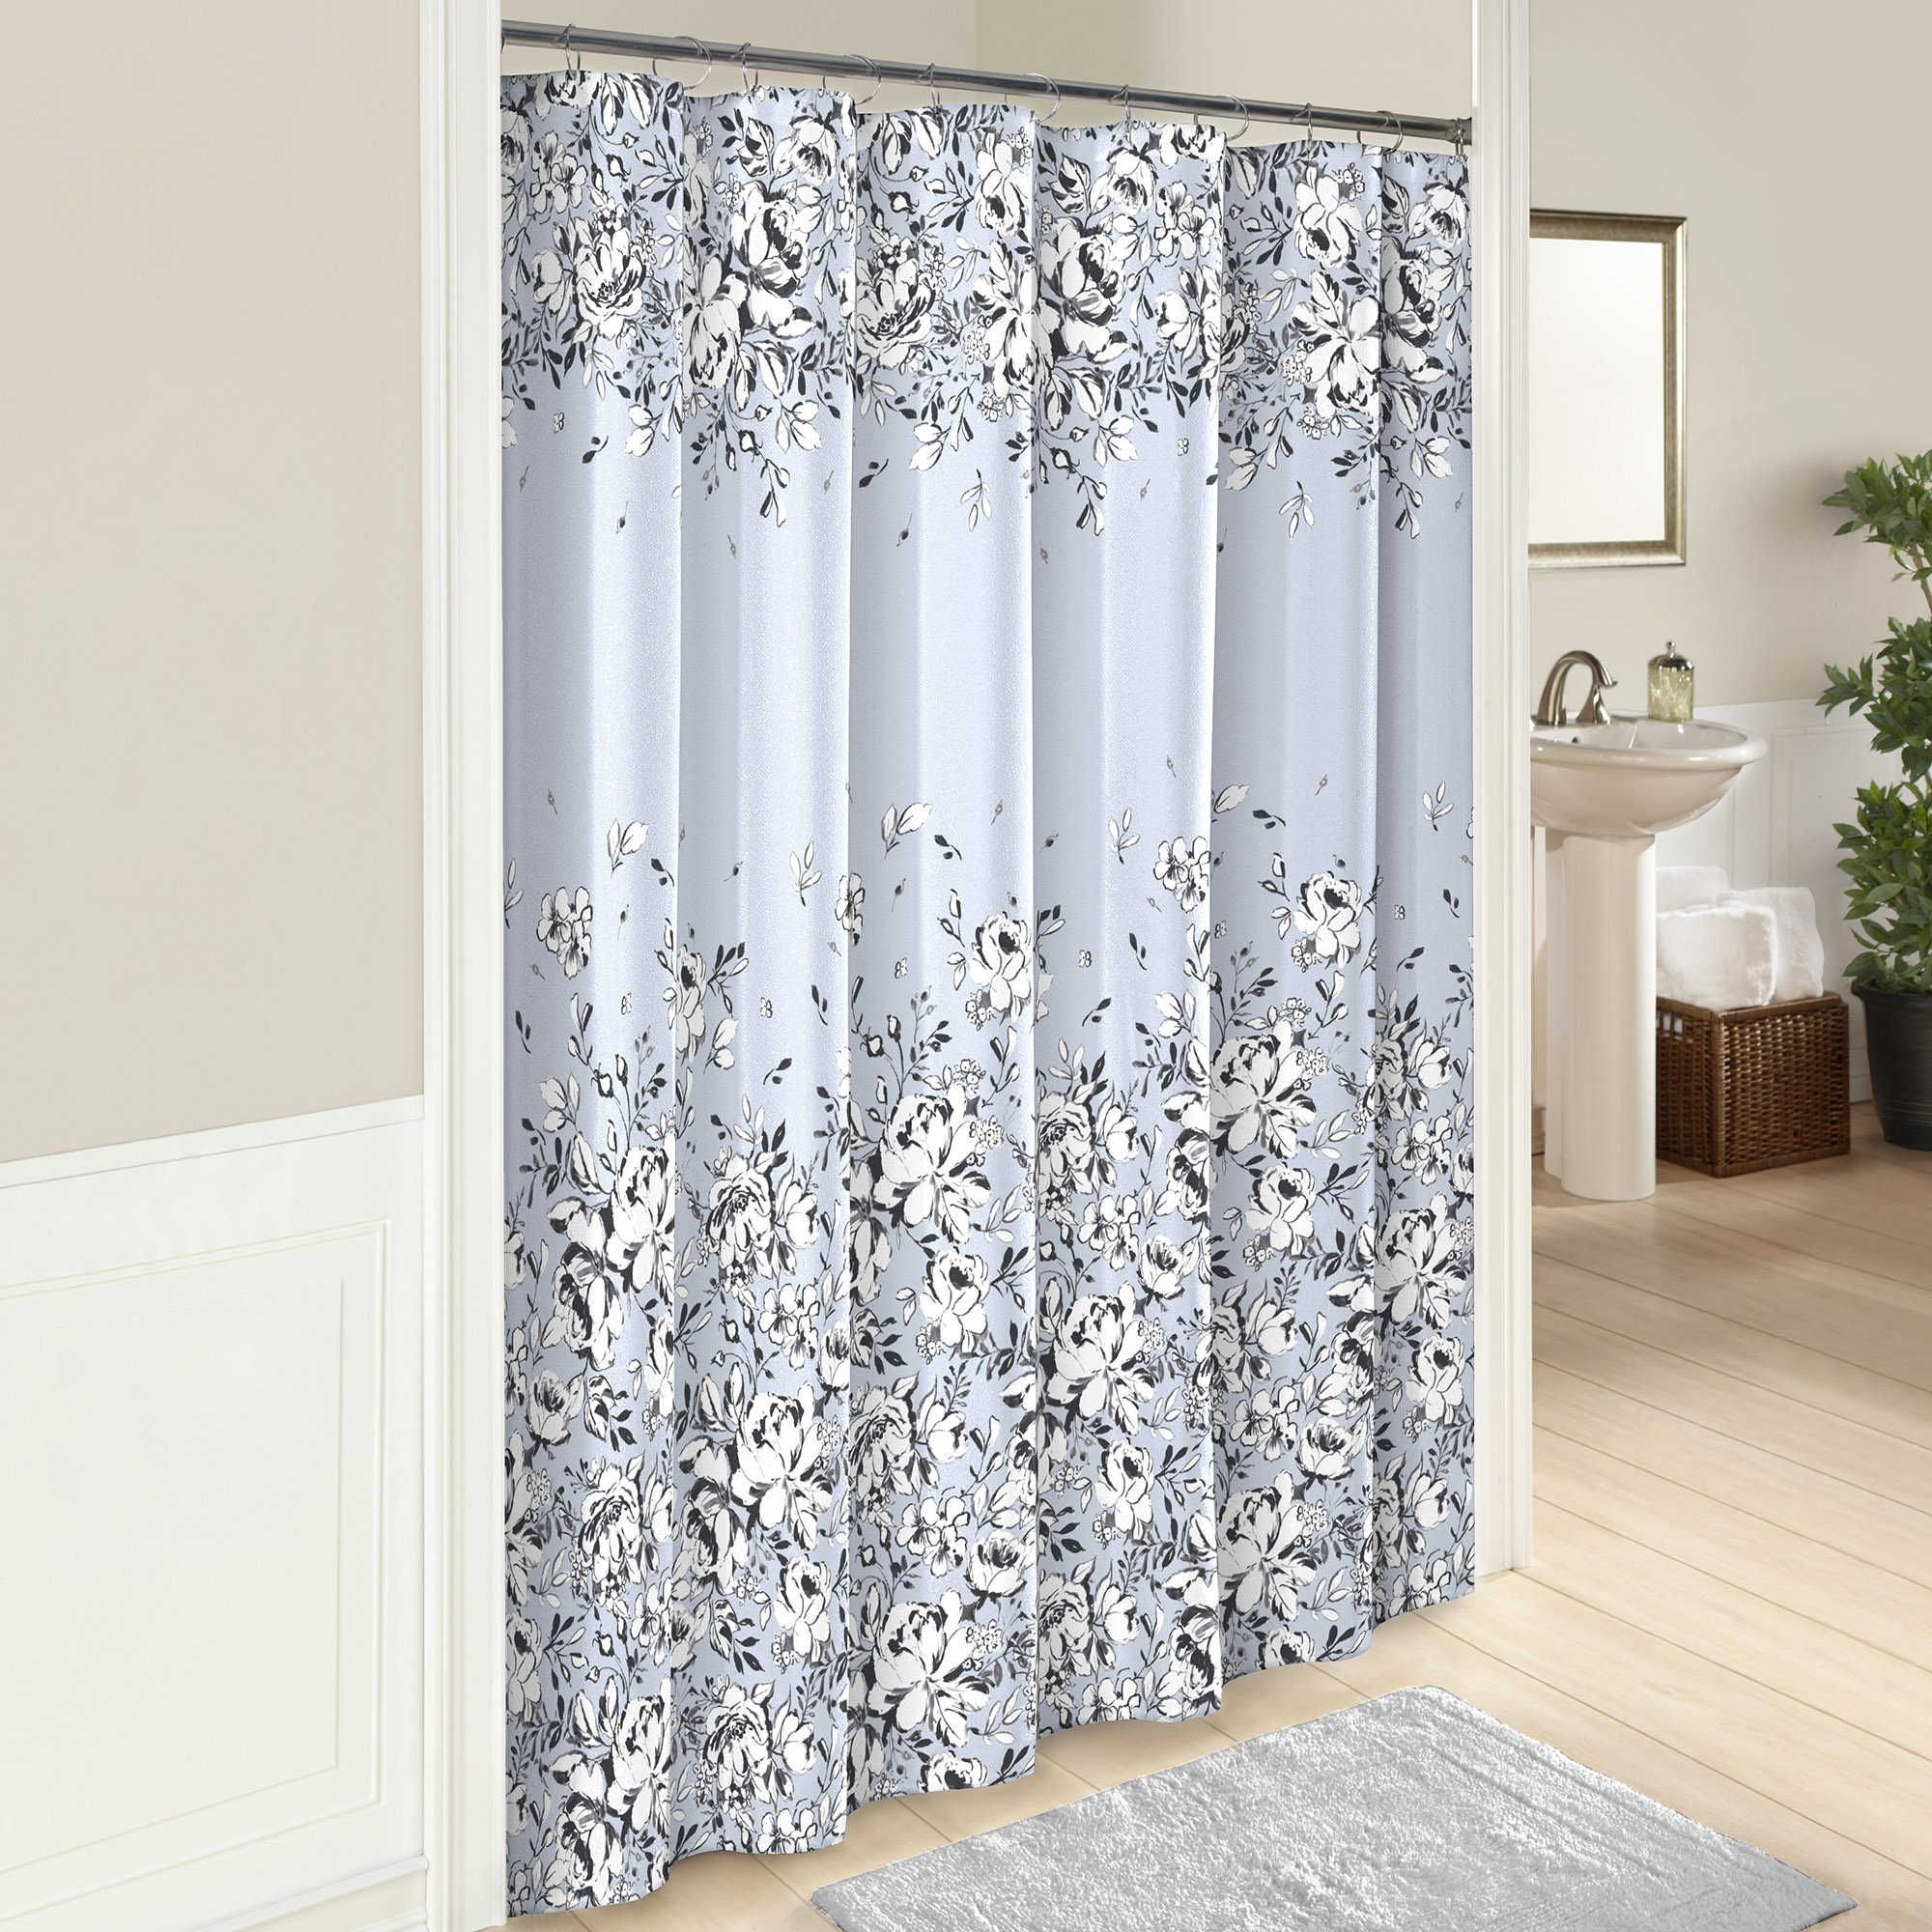 Marble Hill Danica Shower Curtain in Blue Traditional